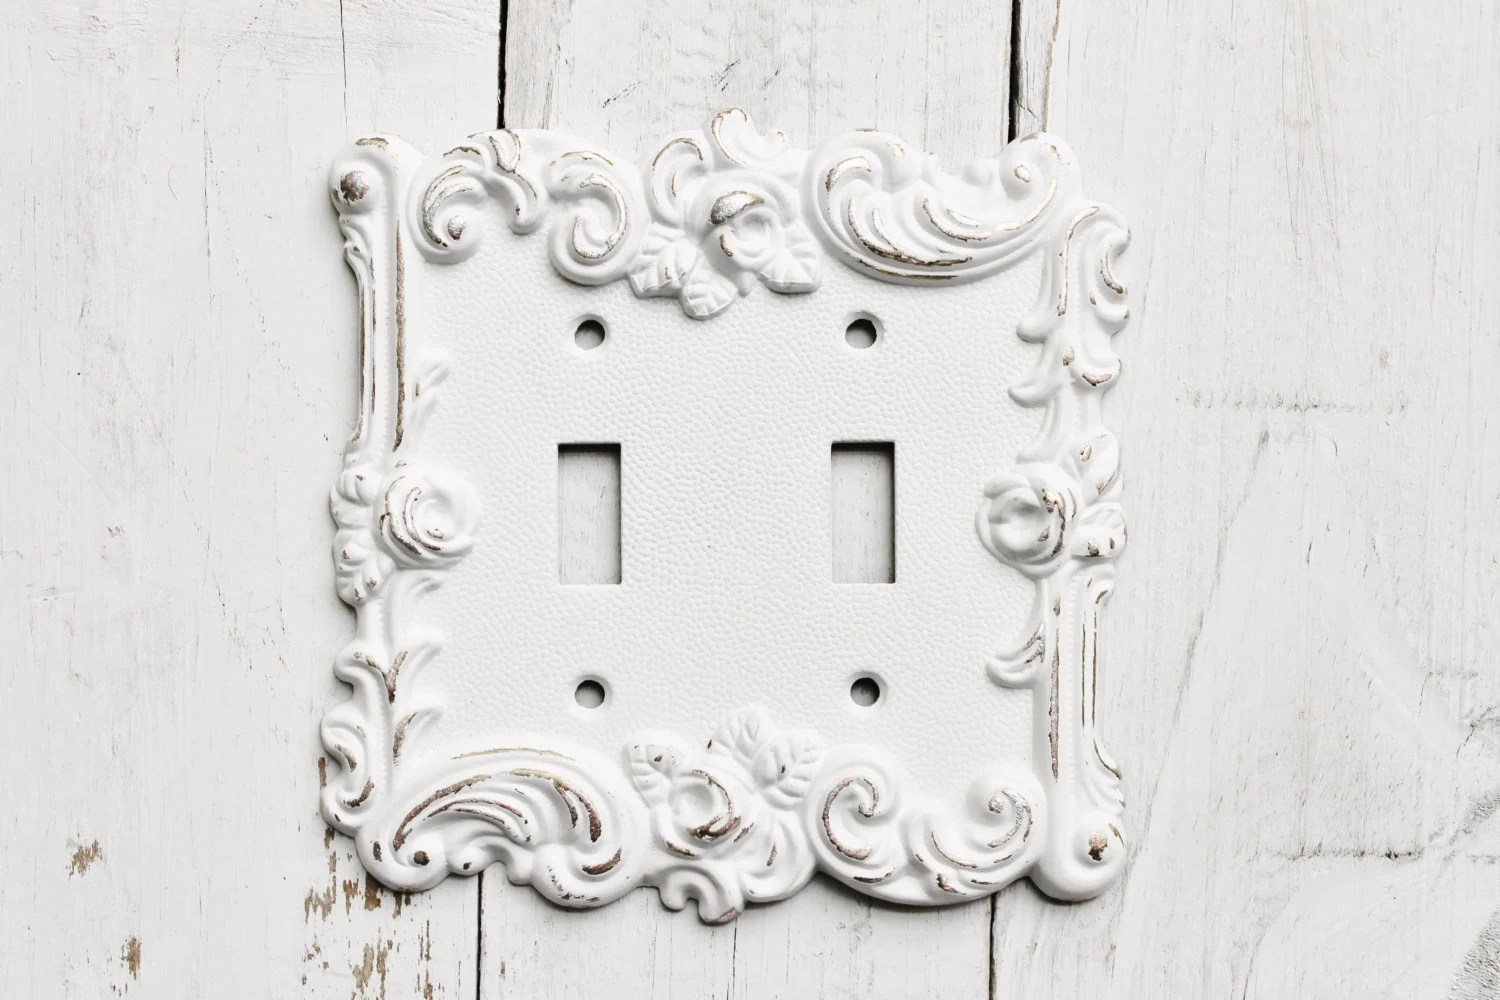 Distressed Metal Wall Decor Double Light Switch Cover White